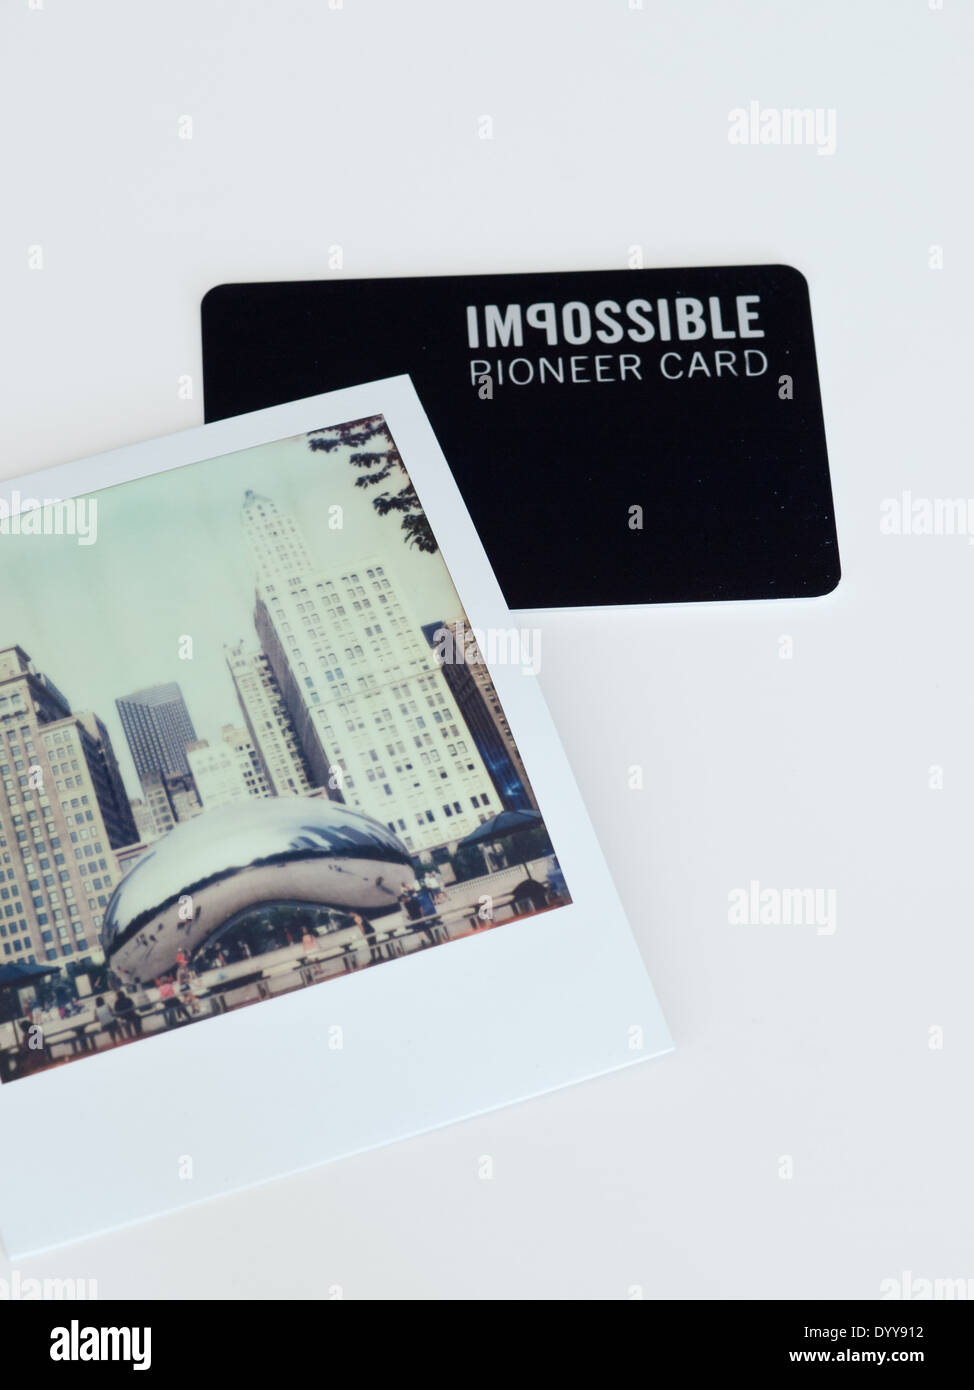 A view of an Impossible Pioneer Card and Polaroid picture (from Impossible Project film). Stock Photo